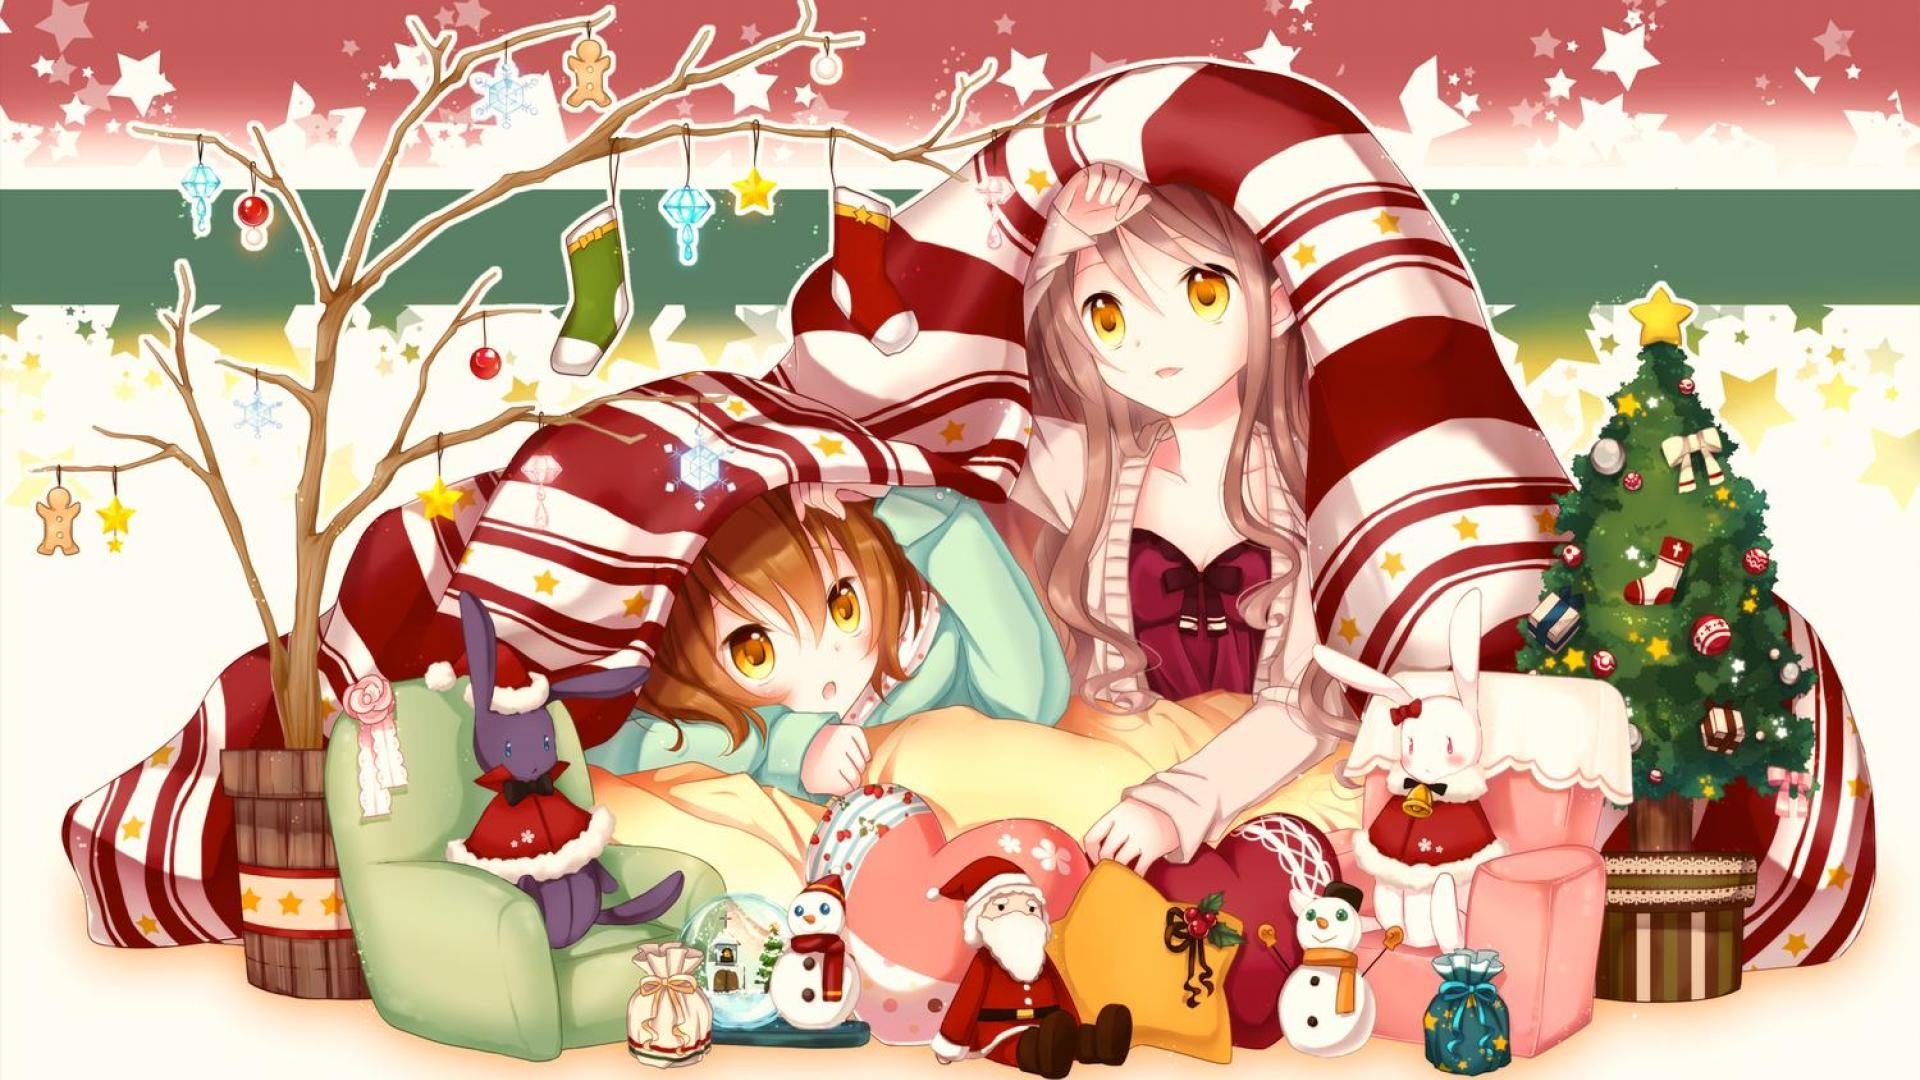 Anime christmas wallpaper hd 70 images - Anime hd wallpapers for pc ...